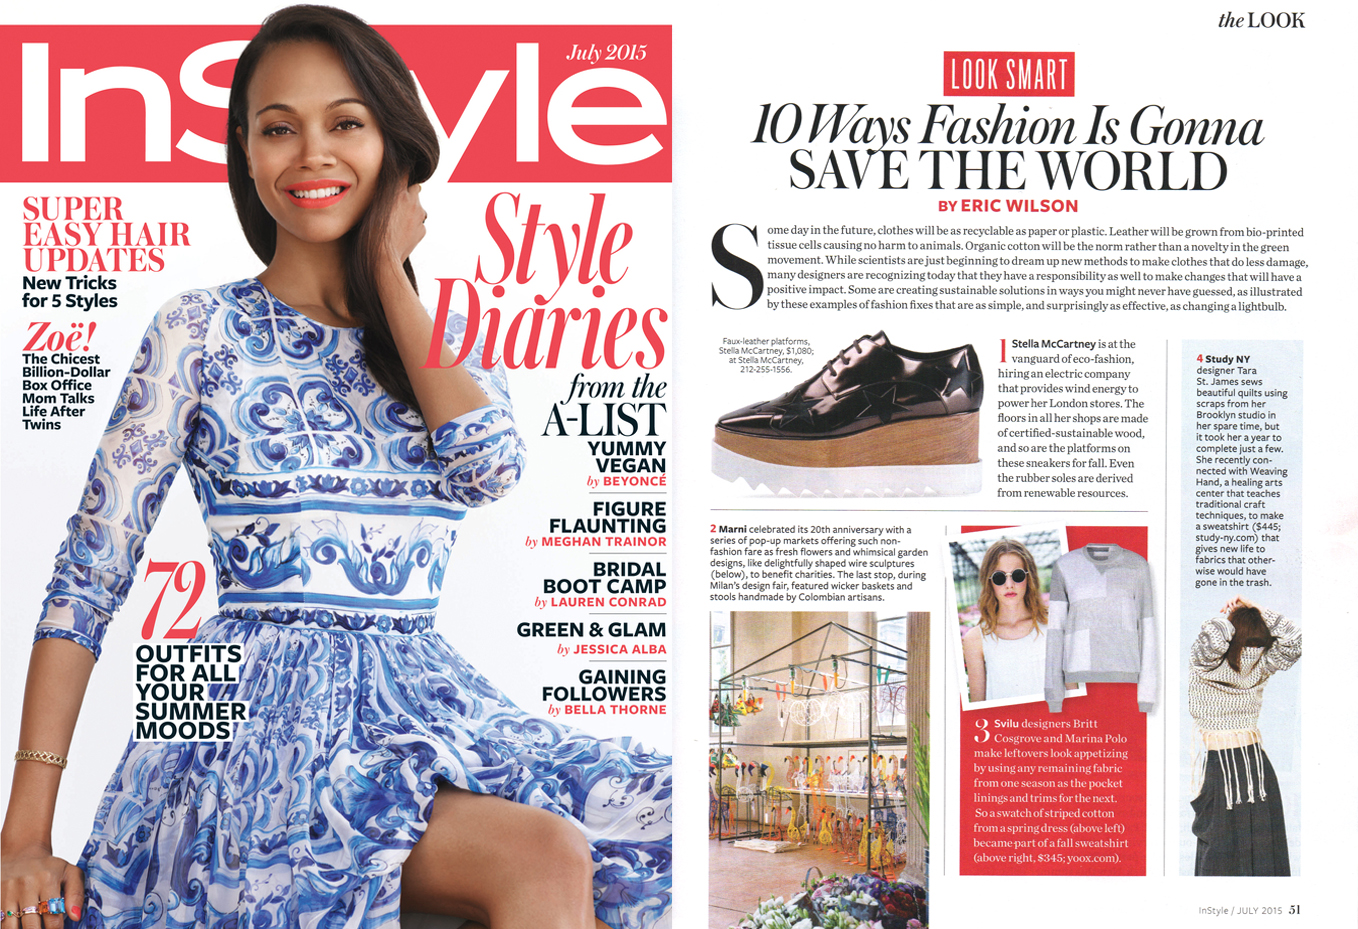 The Weaving Hand Sweatshirt byStudy NY wasfeatured in the July 2015 issue of InStyle